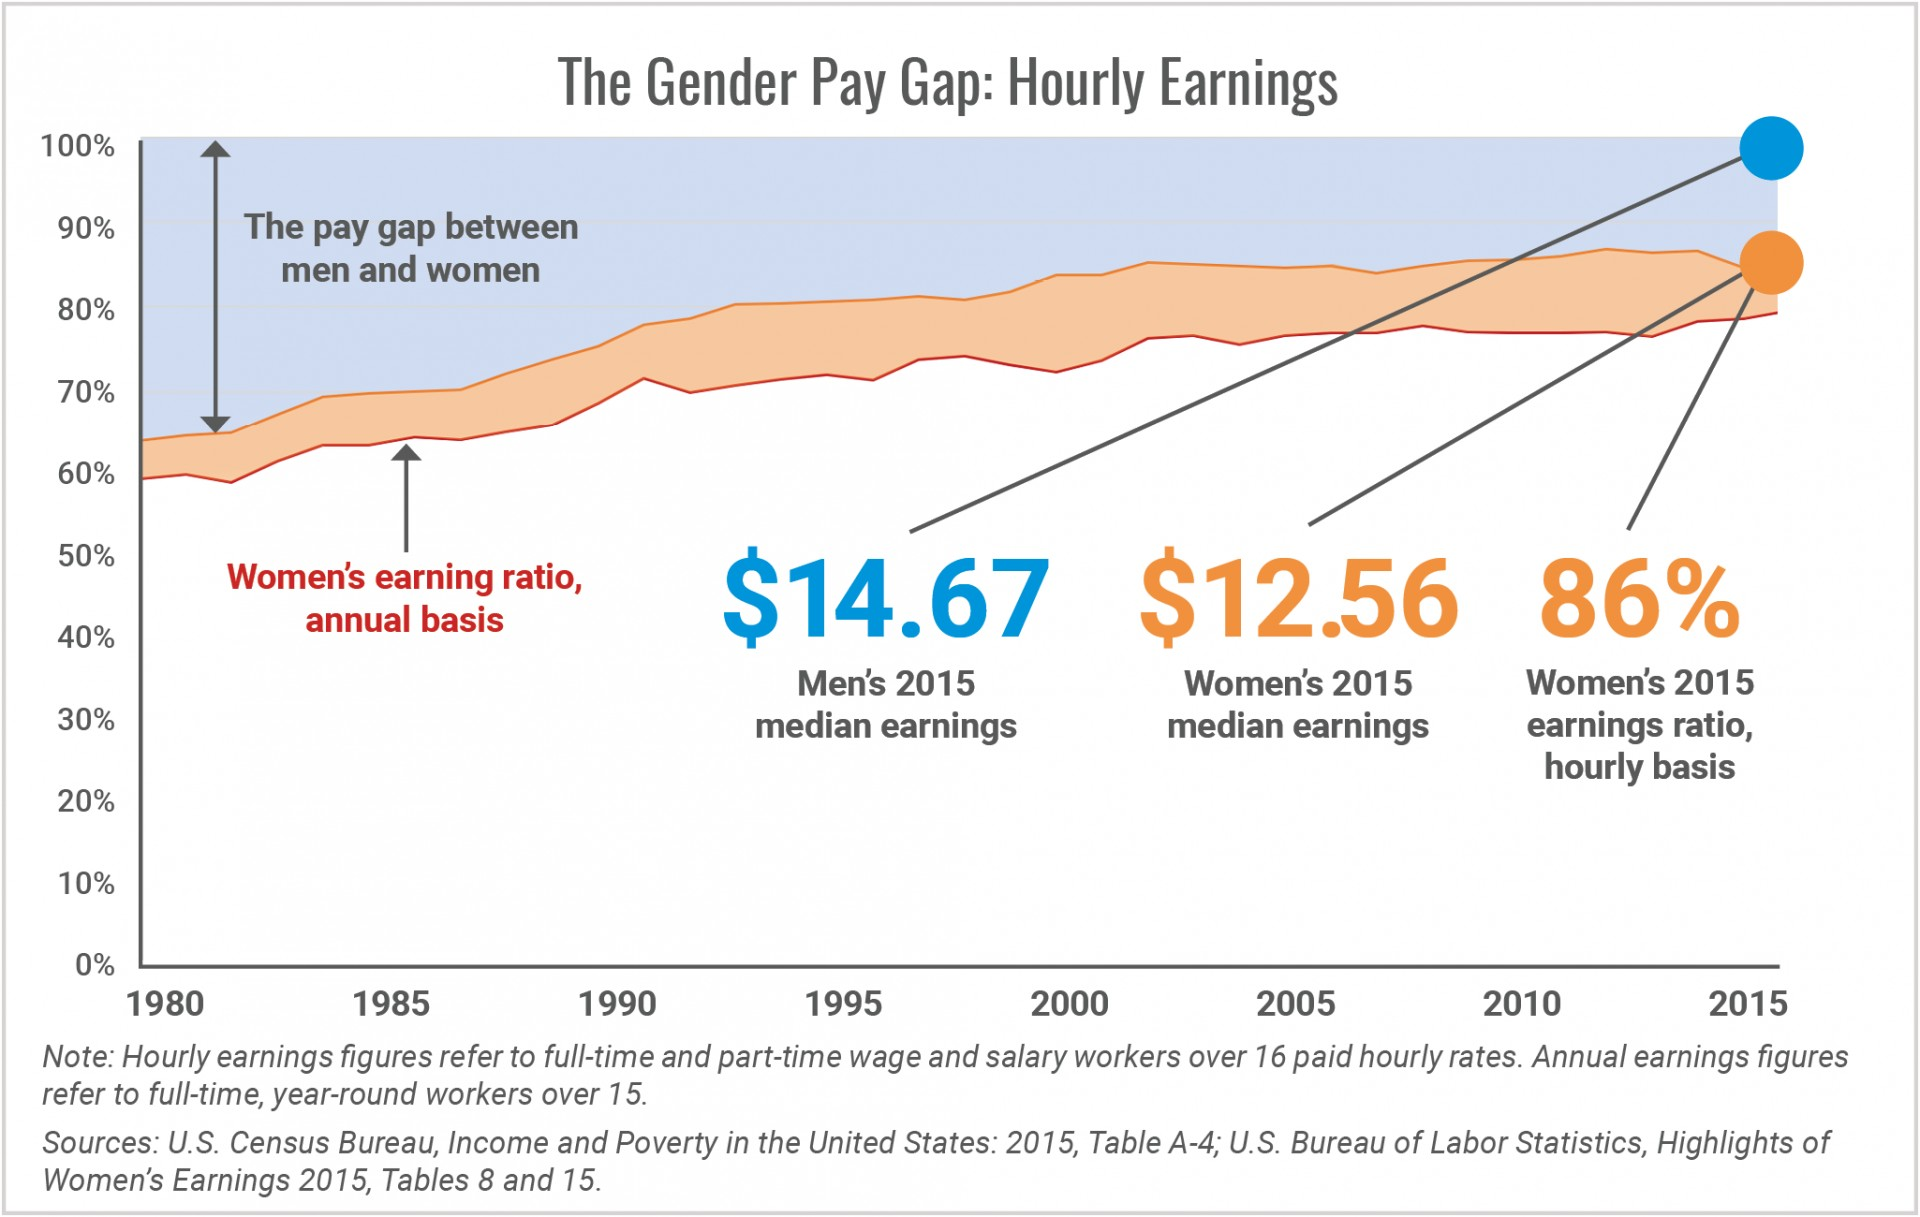 010 Research Paper Pay Gap The Gender Hourly Earnings1505304633 Top In India Wage Outline 1920